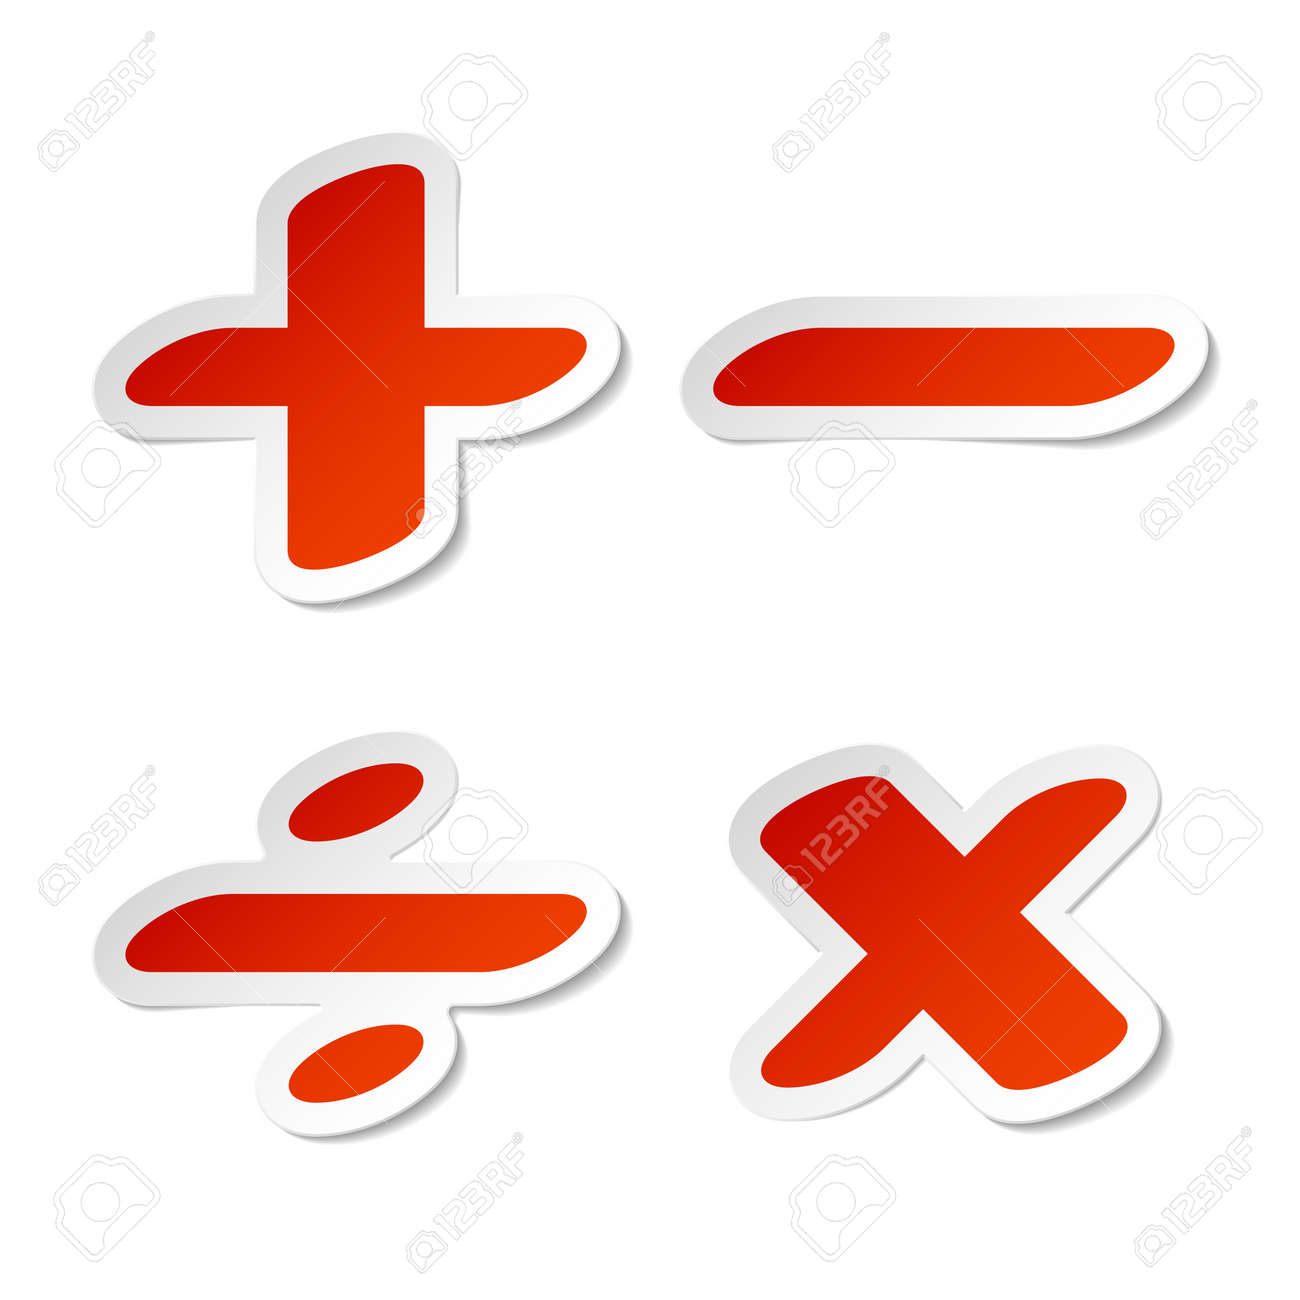 Math symbols stickers royalty free cliparts vectors and stock math symbols stickers stock vector 11346114 biocorpaavc Image collections